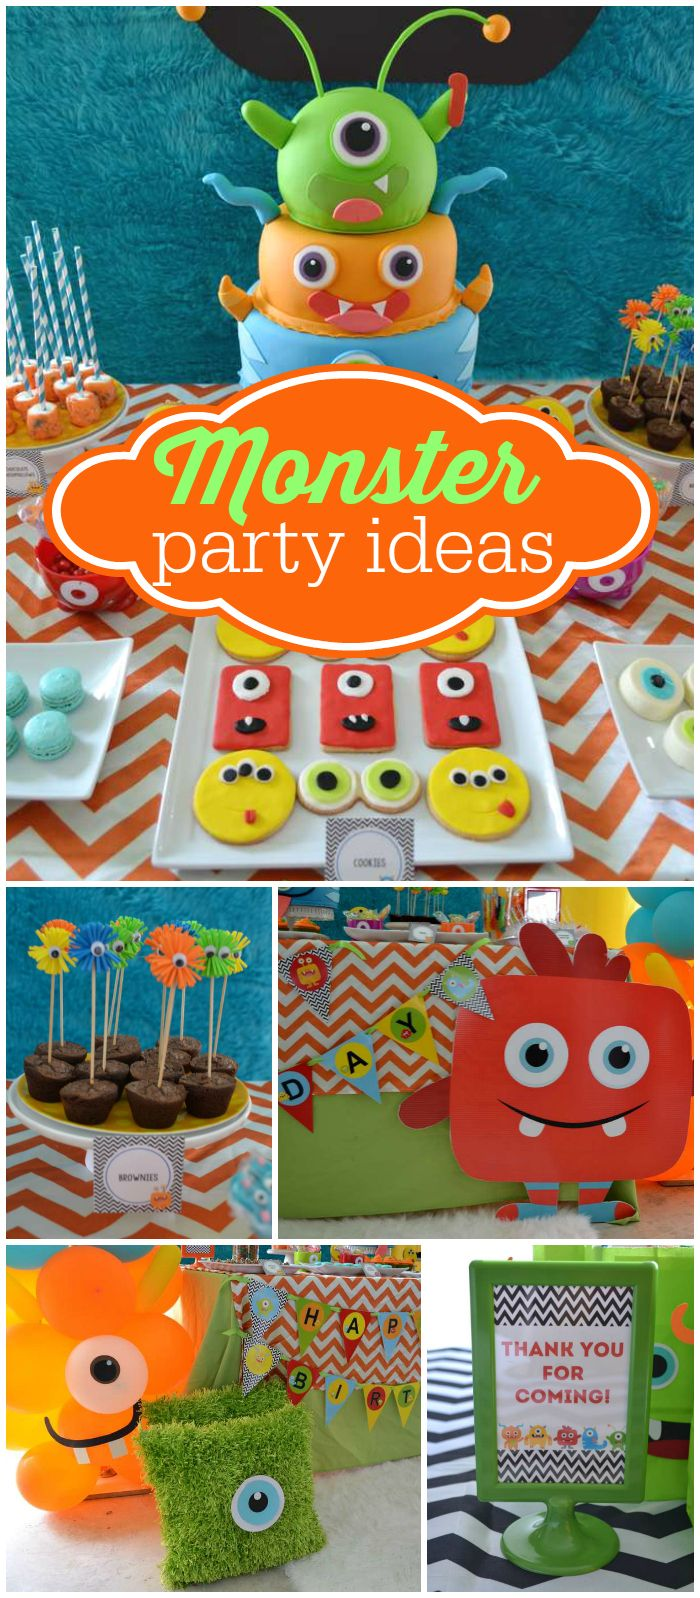 Check out this colorful monster party! Love the amazing cake! See more party planning ideas at CatchMyParty.com!